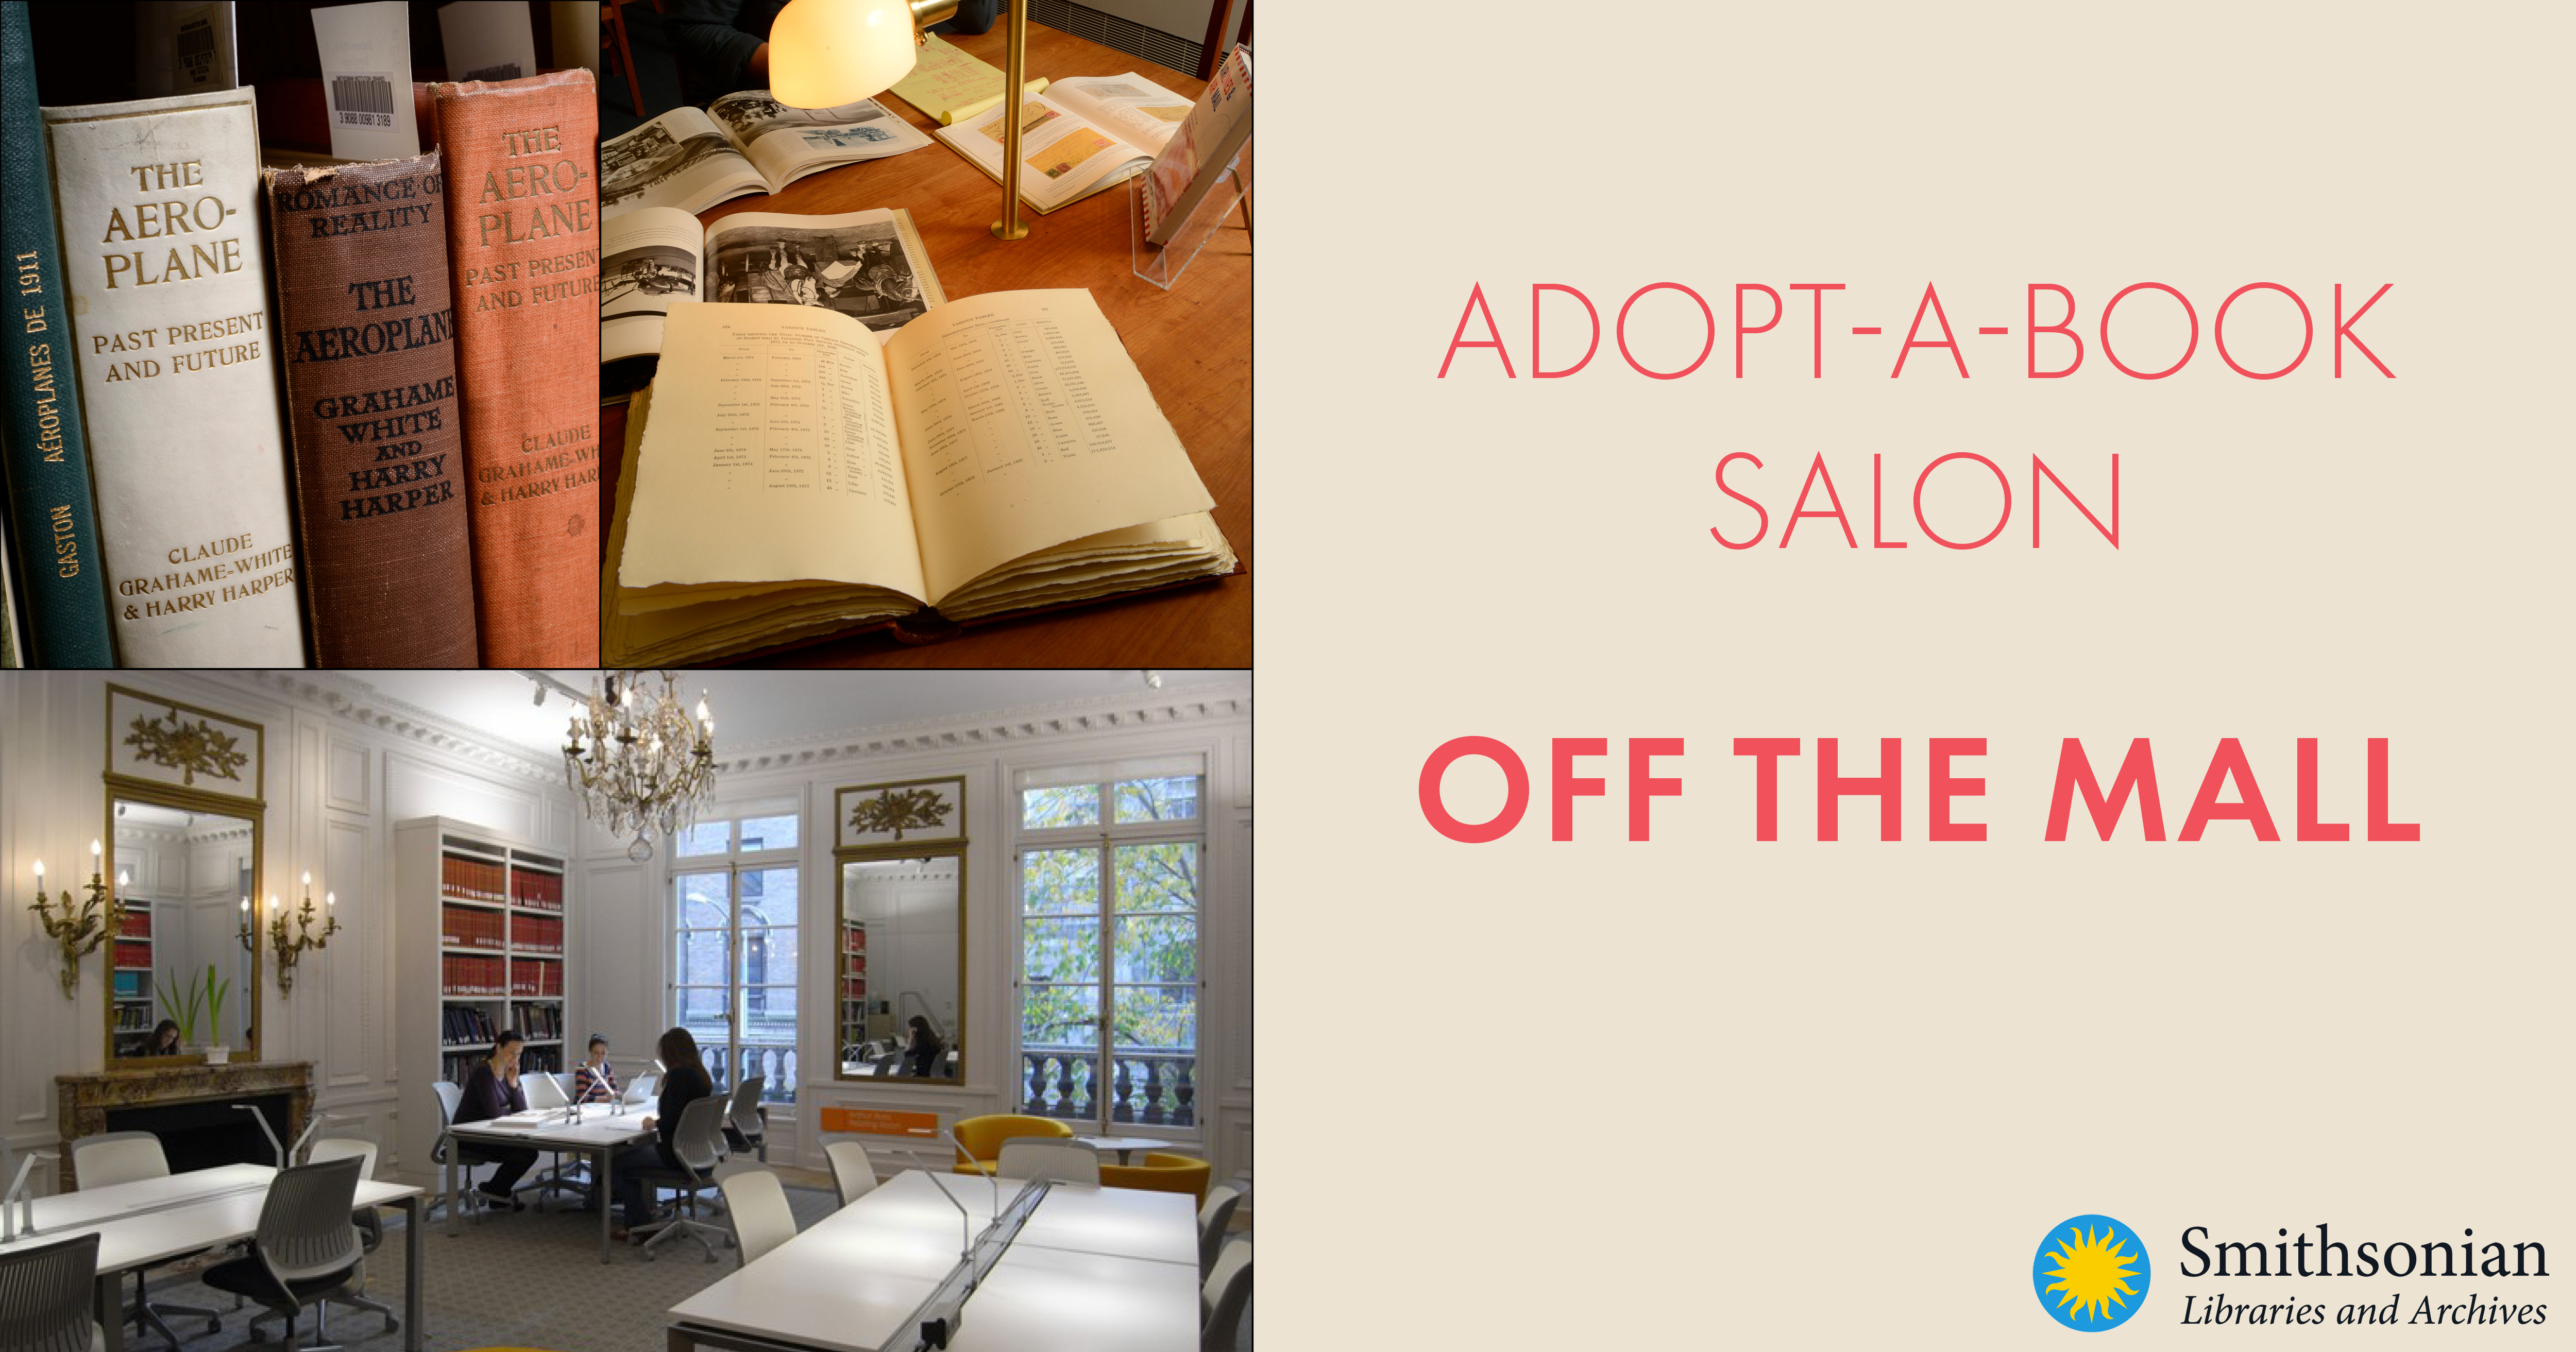 Adopt-a-Book Salon: Off the Mall with images of libraries and books on shelves